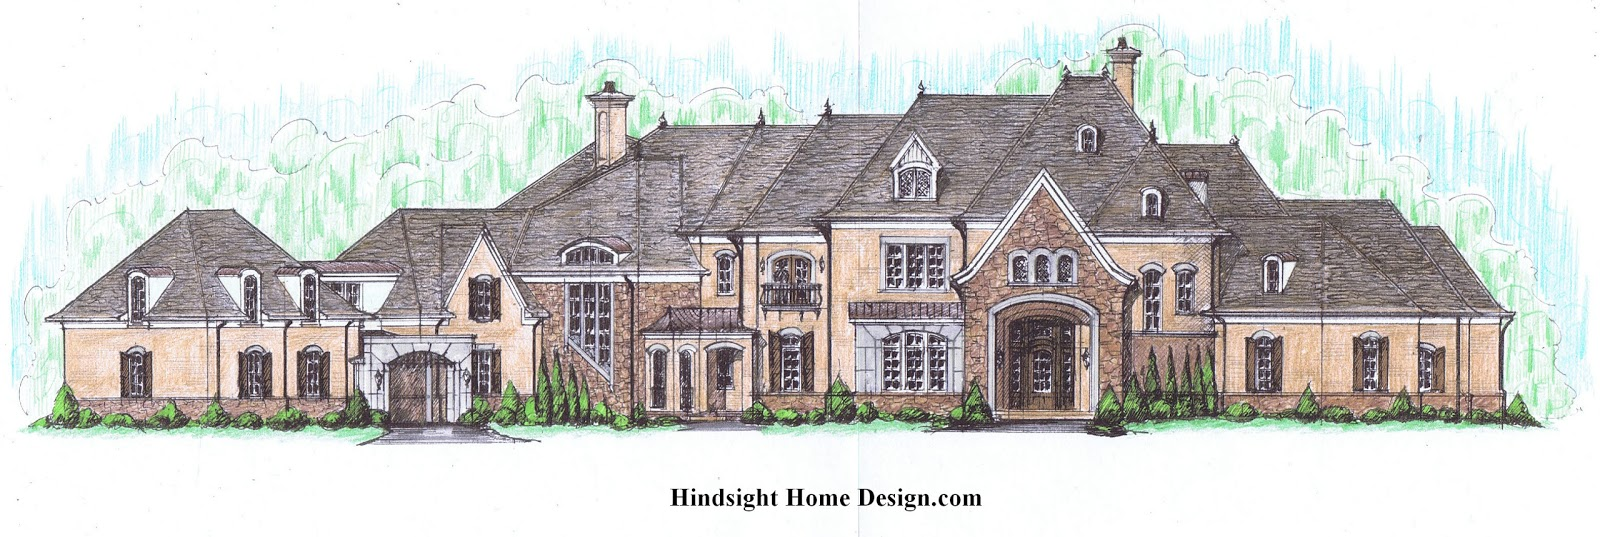 Hindsight Home Design First Place Winner American